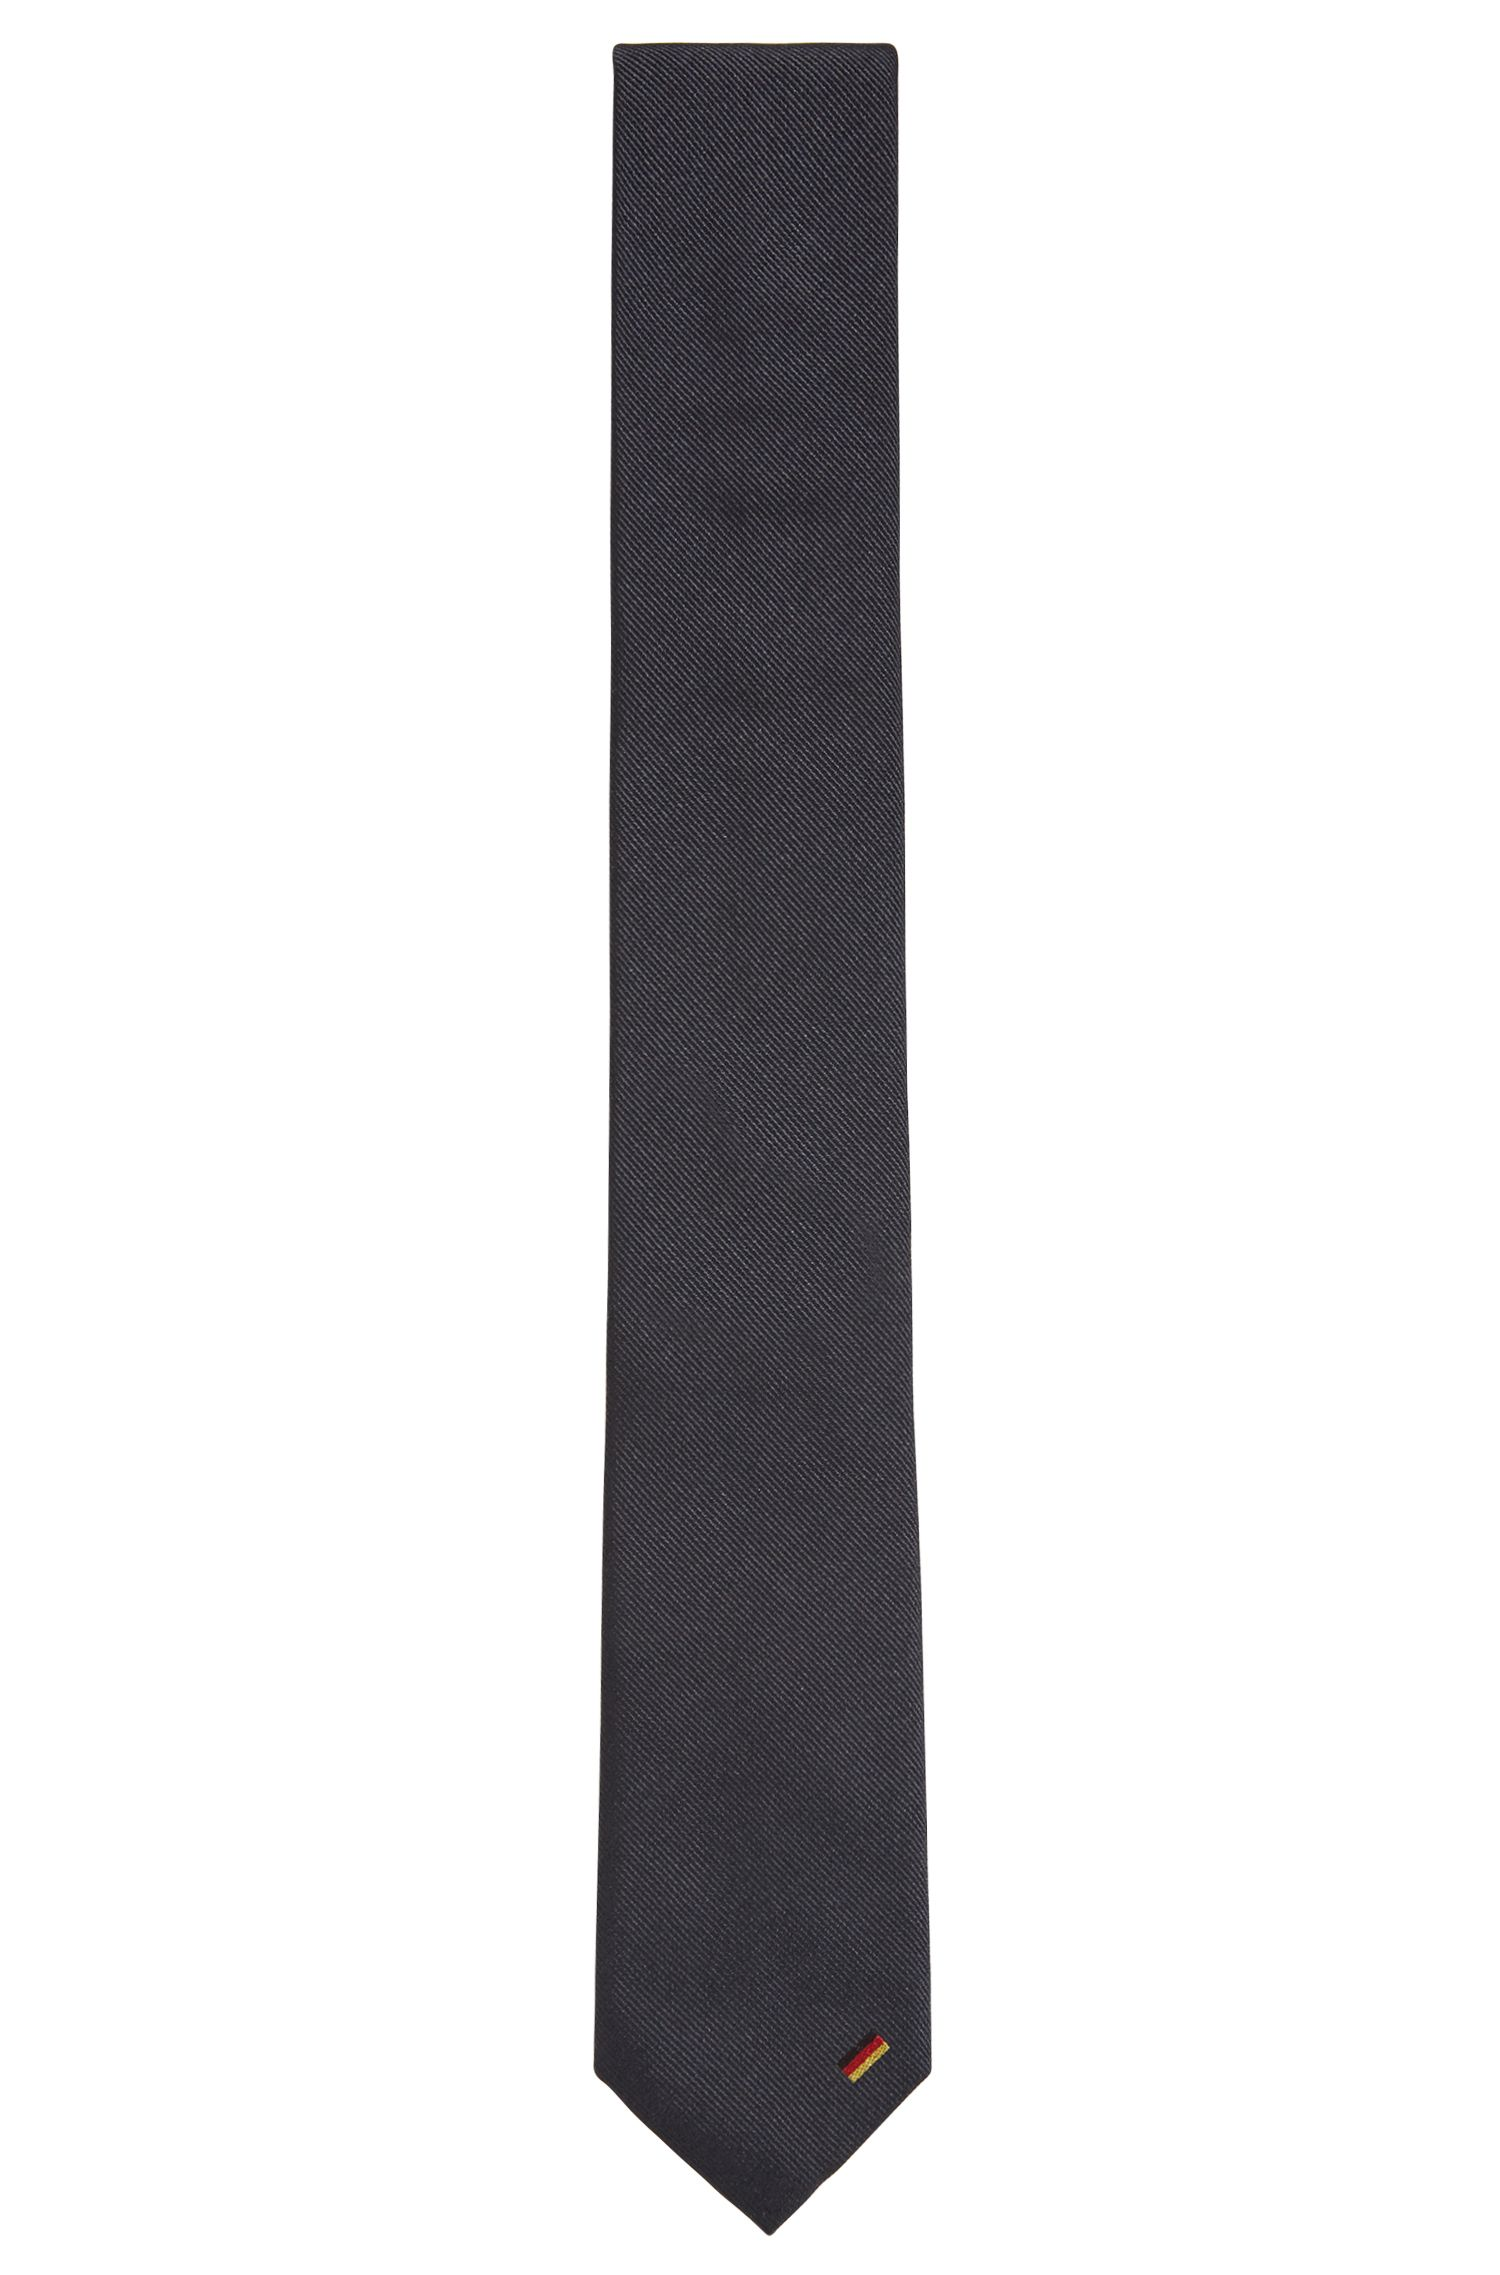 Navy silk tie with country flag detail